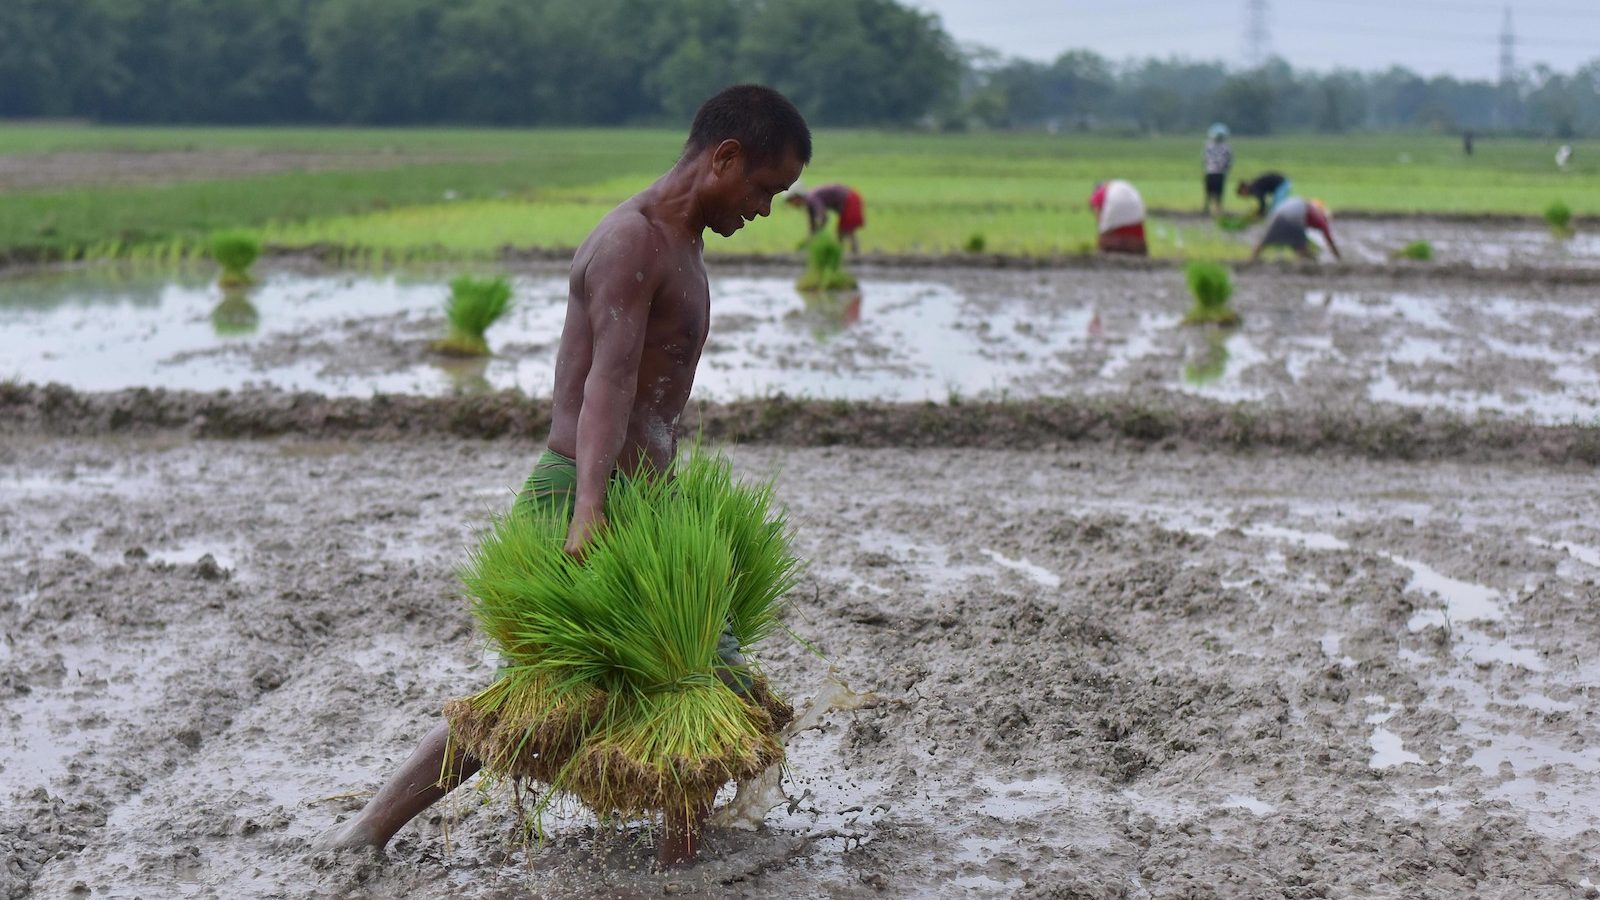 A farmer carries rice seedlings to be planted in a paddy field at a village in Nagaon district of India's northeastern state of Assam, on July 3, 2021.